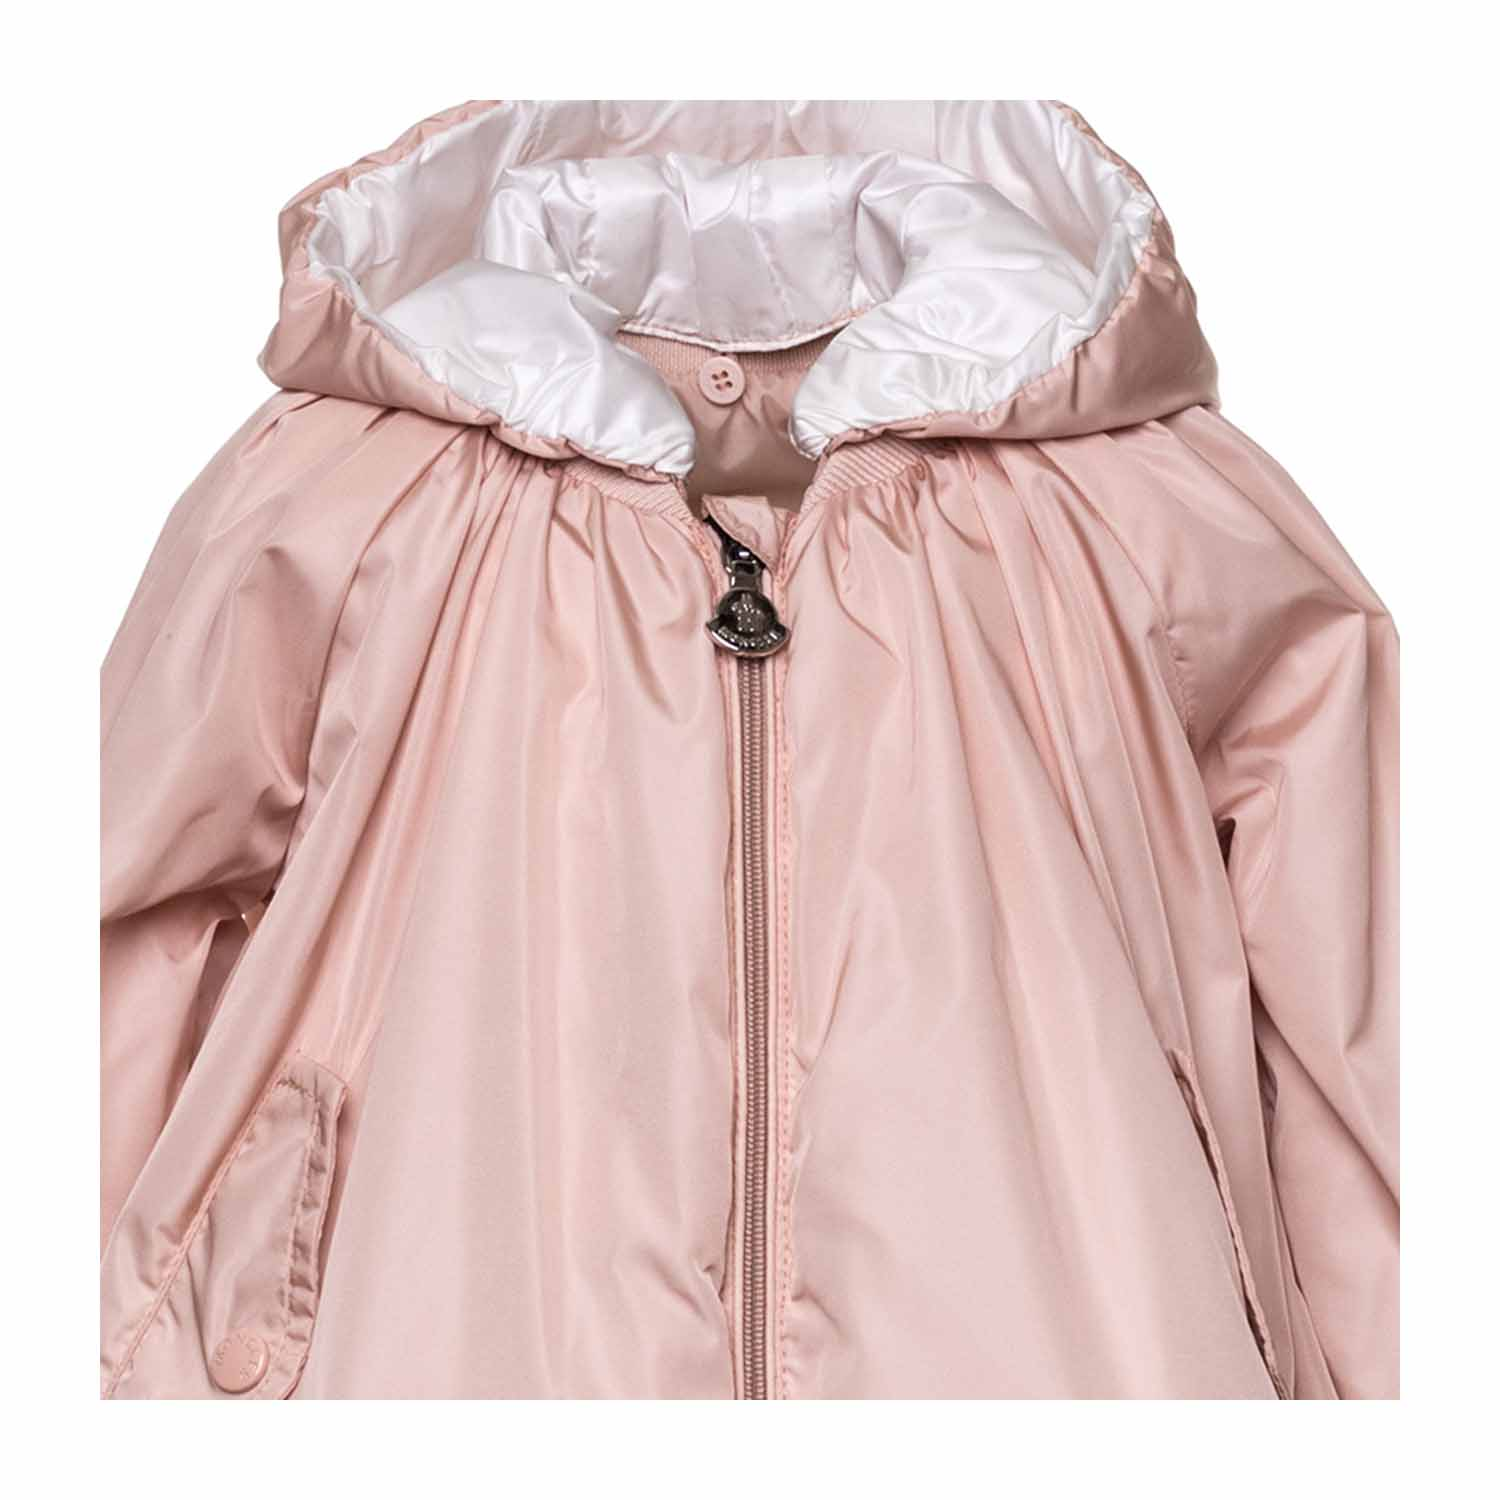 afeac7218 Pink Remire Jacket For Baby Girls